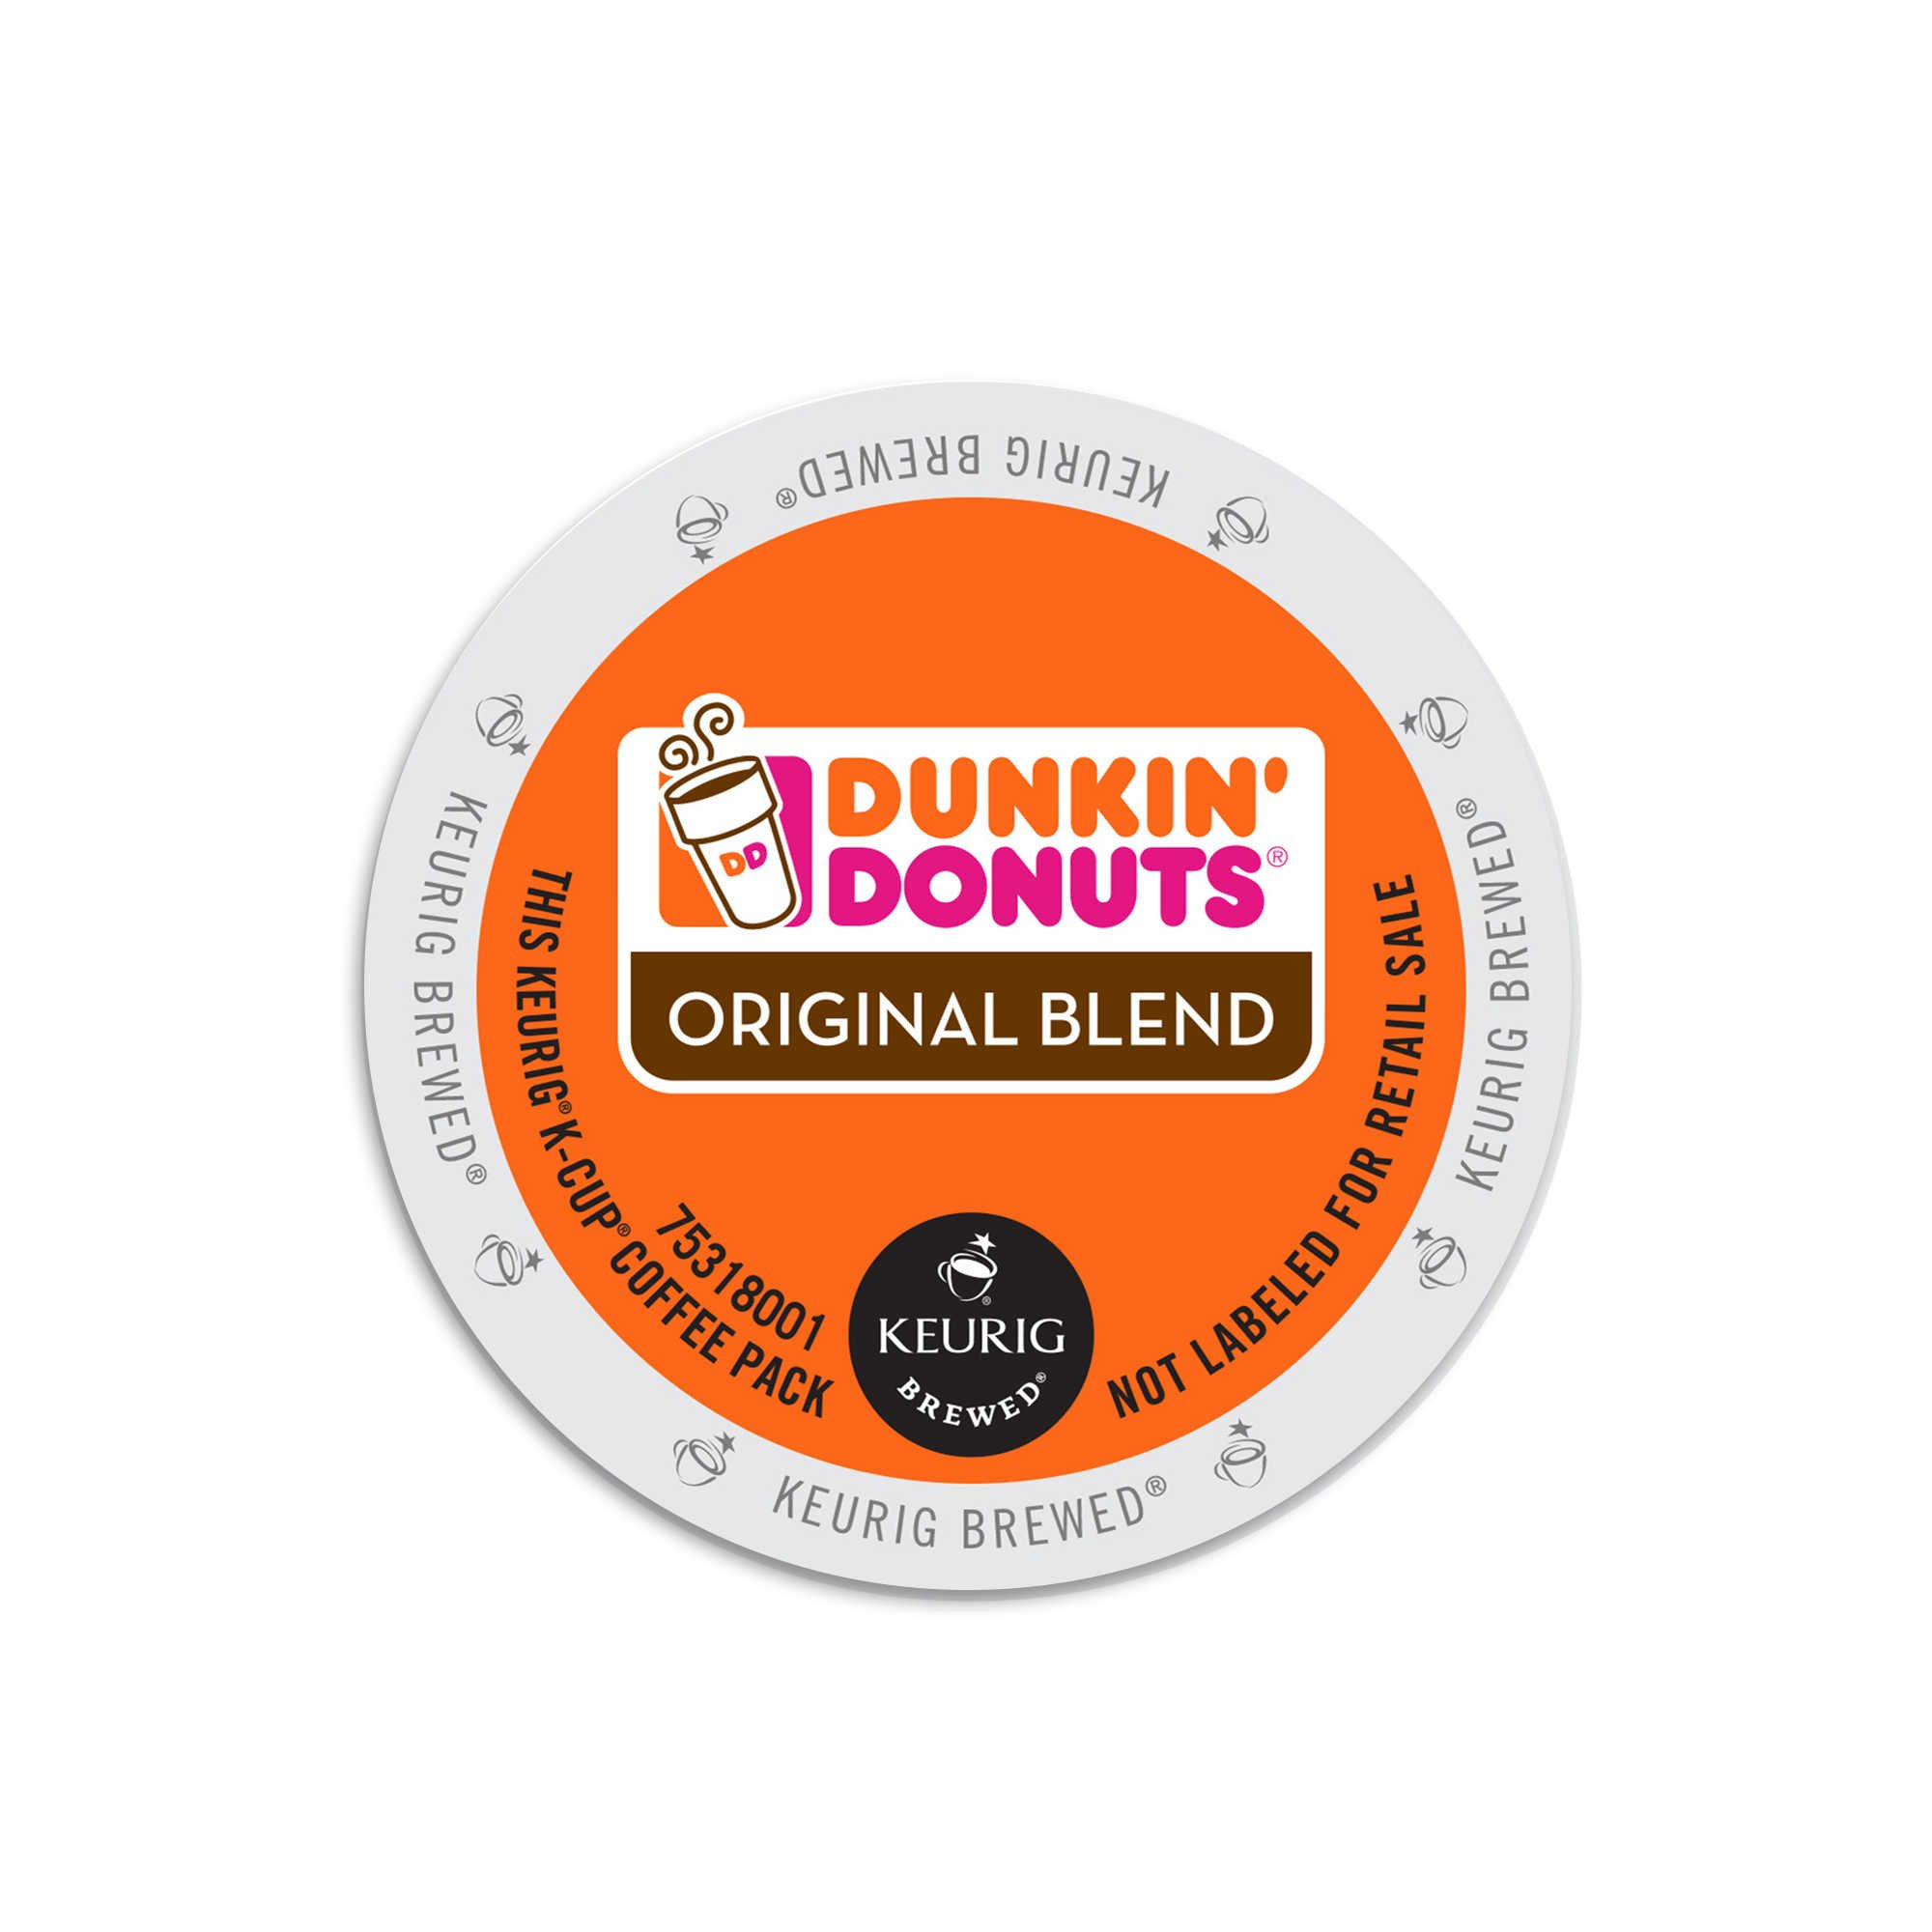 Dunkin' Donuts Original Blend Coffee K-Cups by Dunkin' Donuts